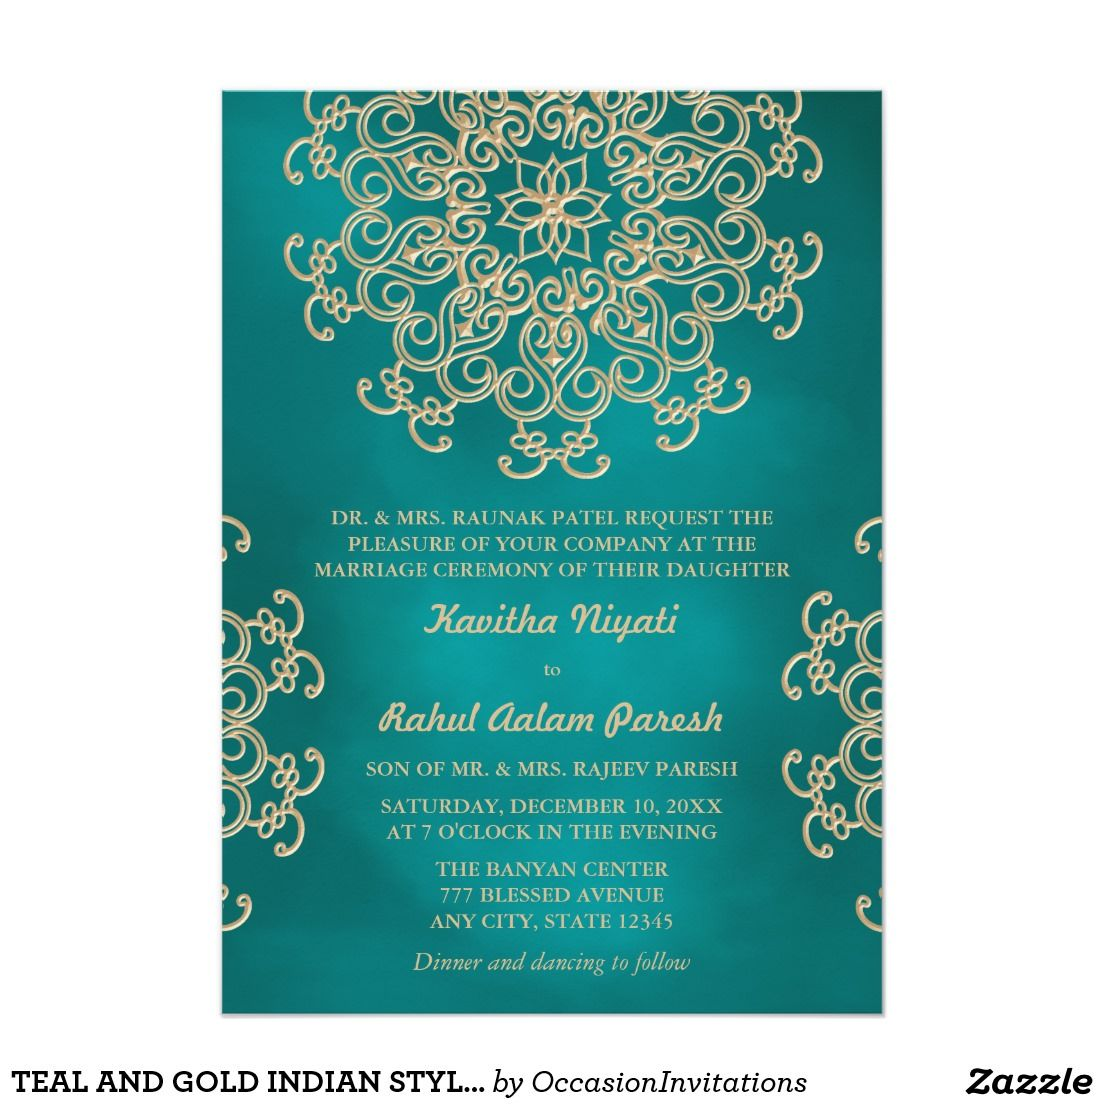 Indian Wedding Reception Invitation Quotes: TEAL AND GOLD INDIAN STYLE WEDDING INVITATION